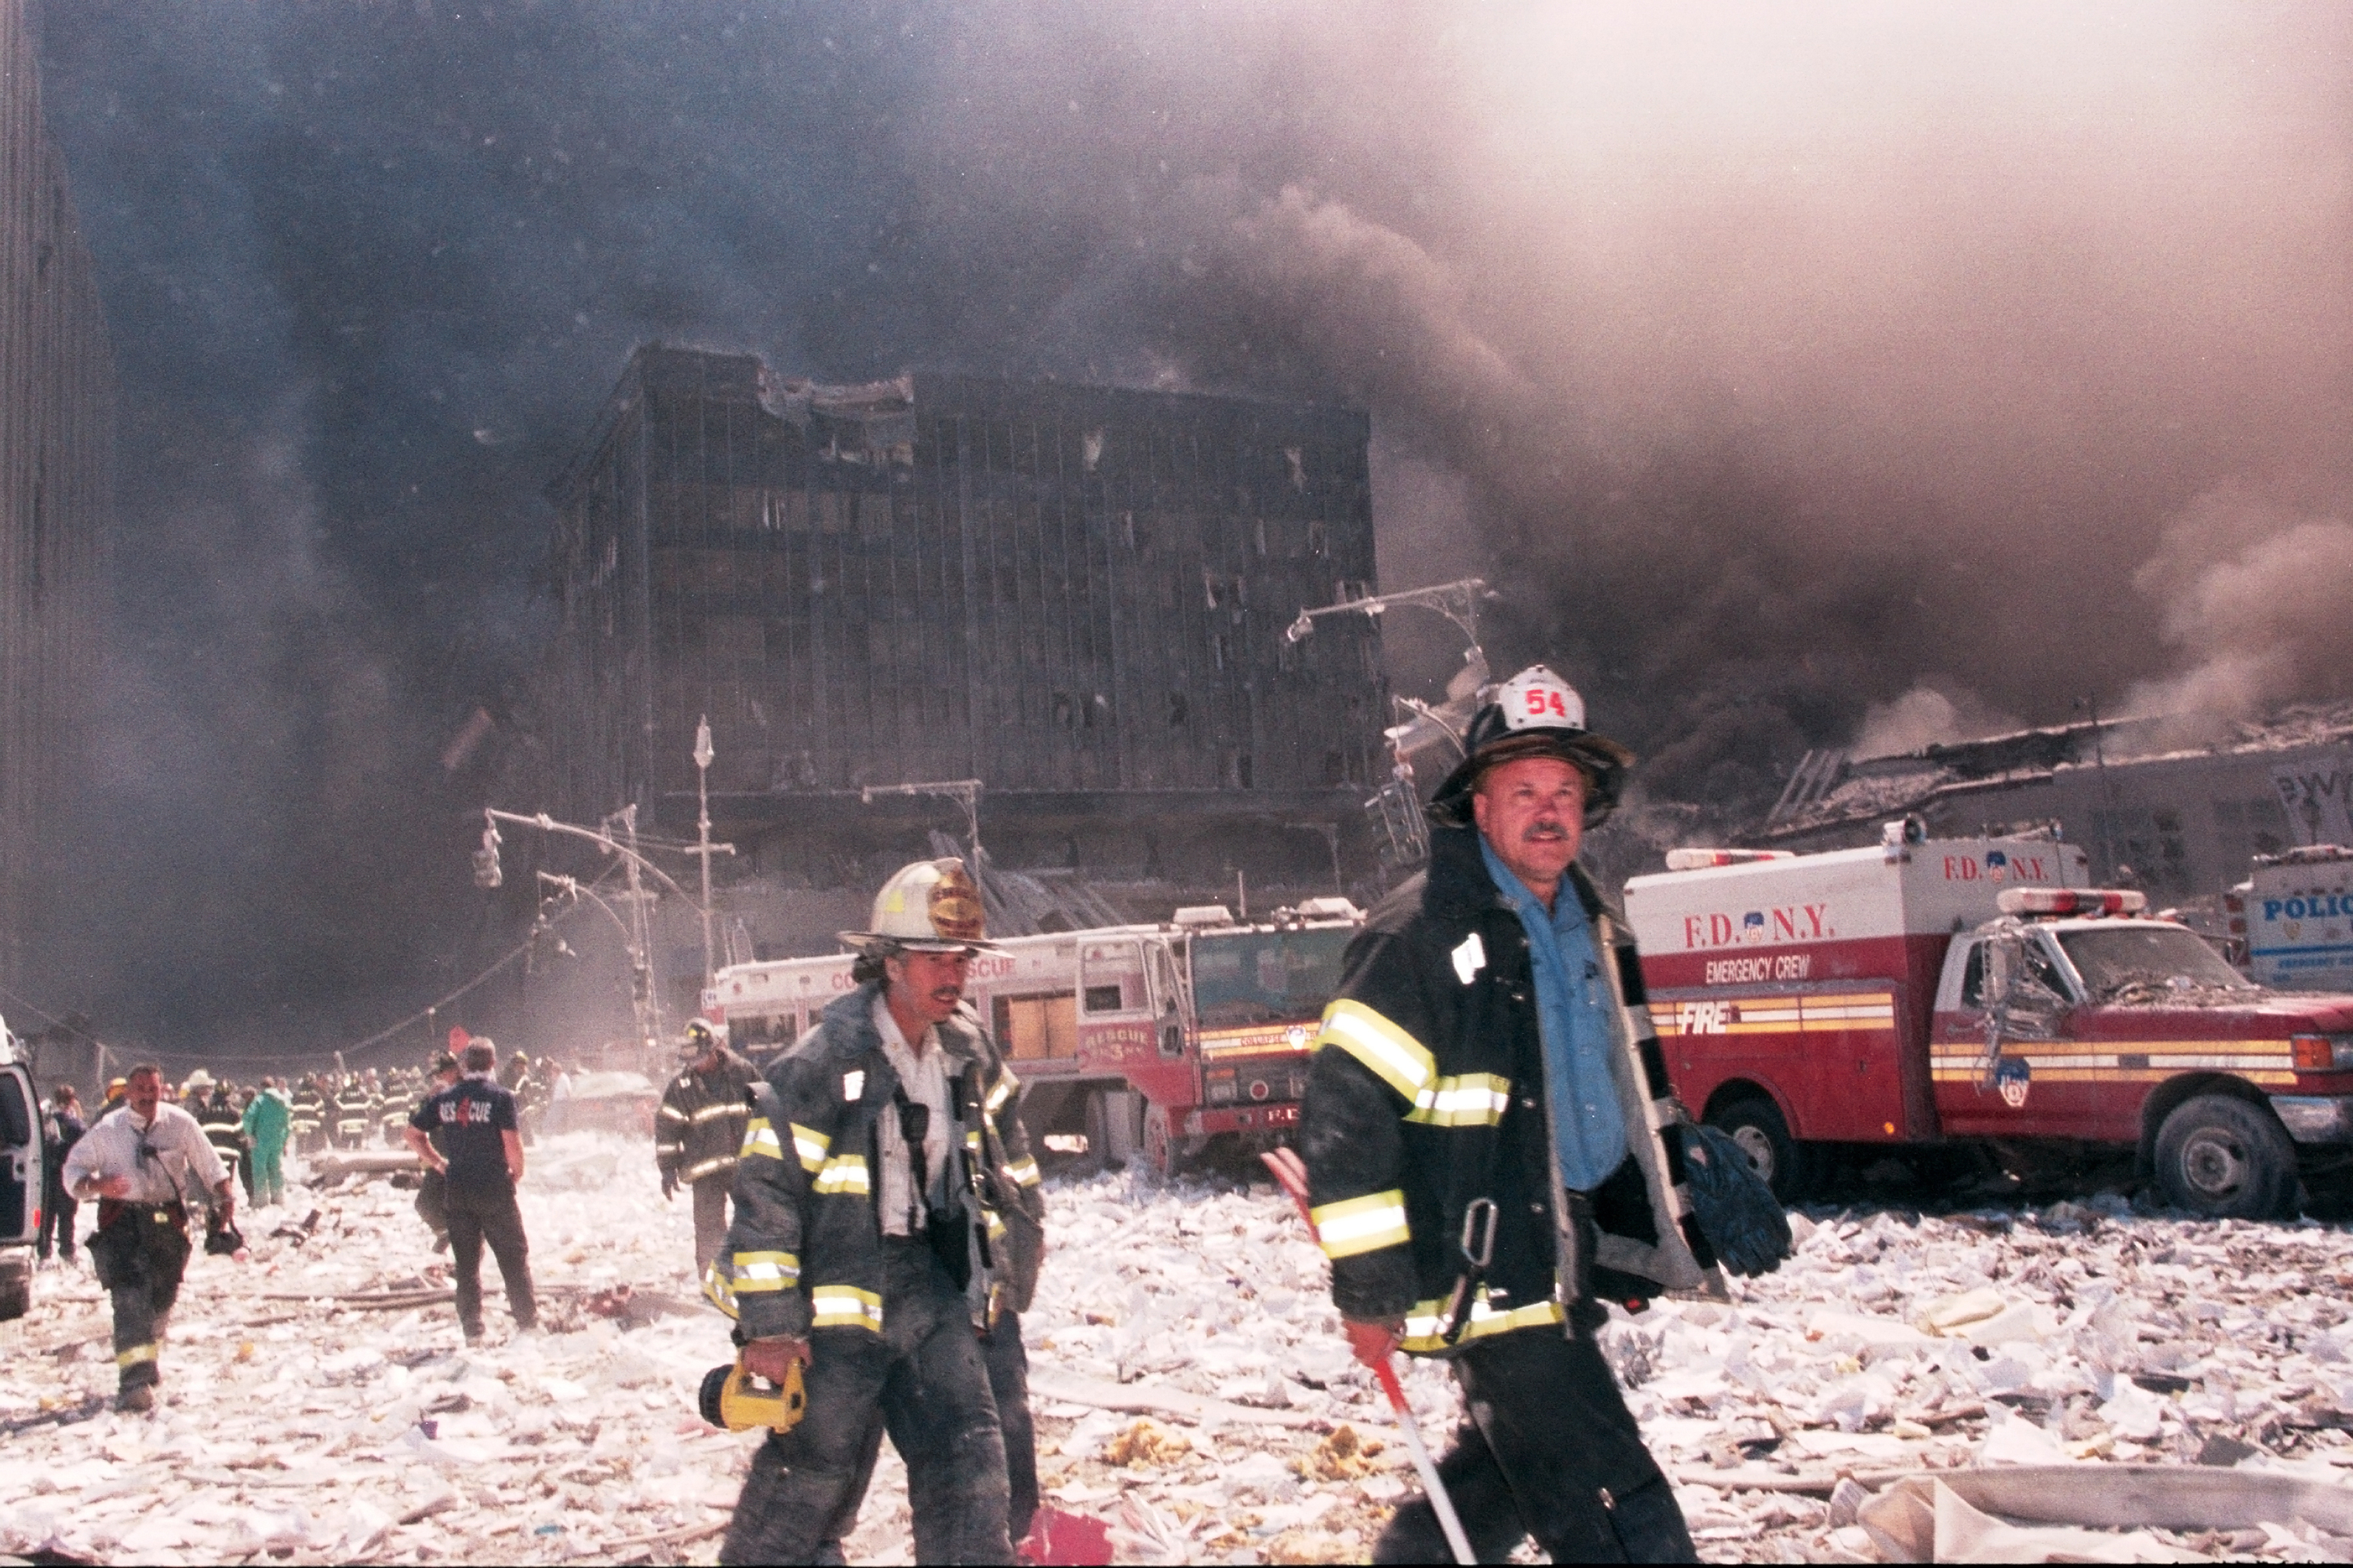 Firefighters walk through Ground Zero in the aftermath of the World Trade Center collapse on Sept 11th, 2001